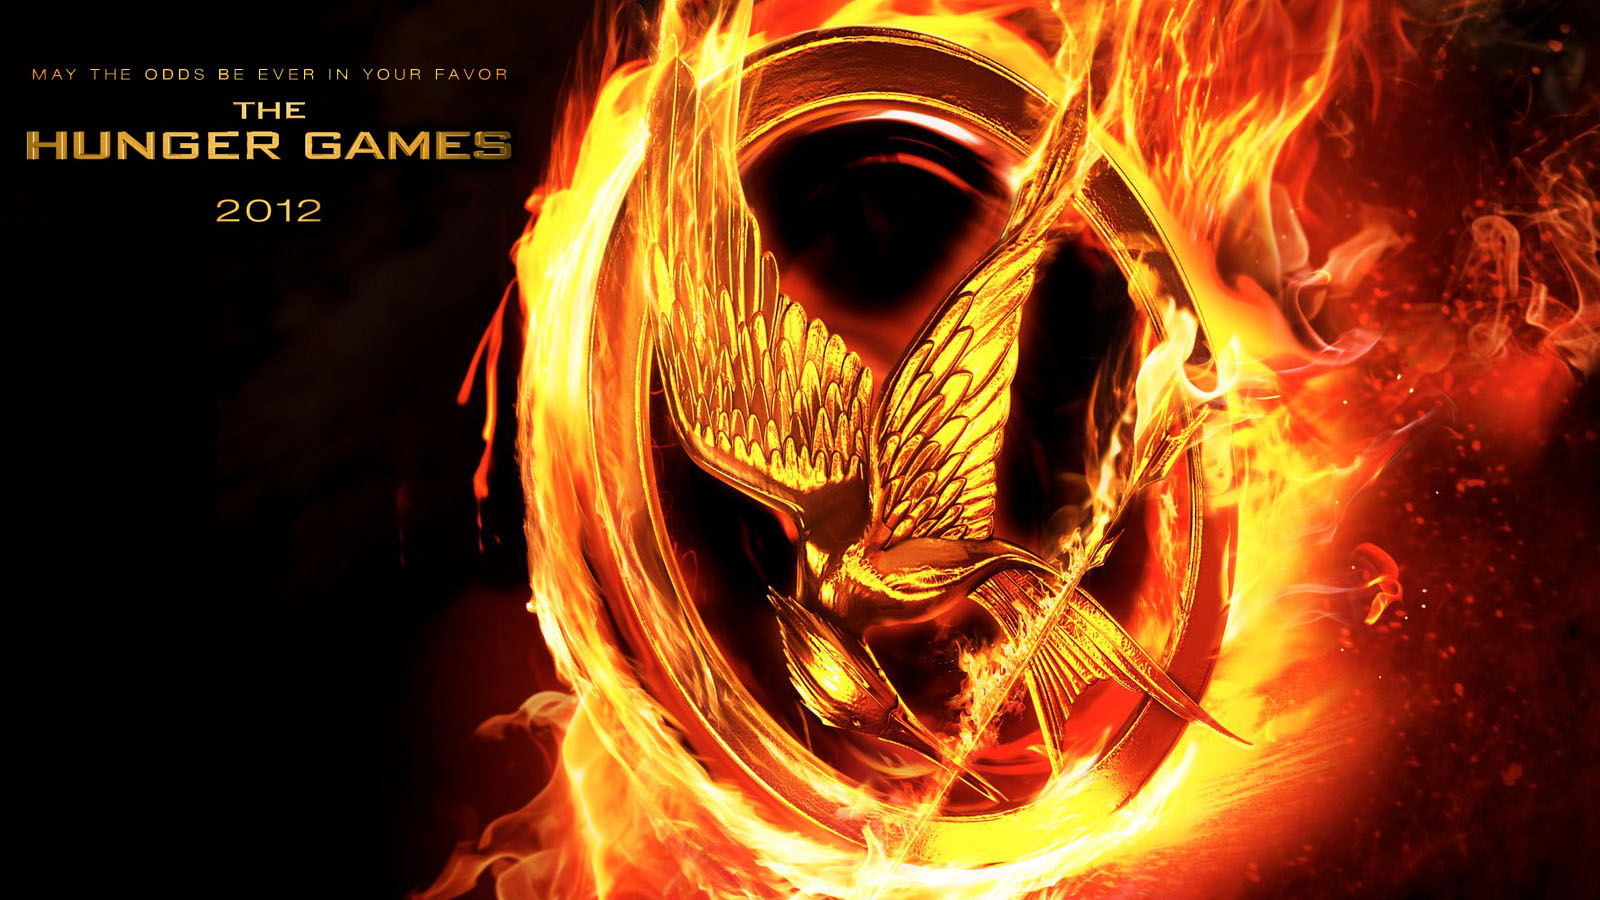 The Hunger Games The Hunger Games Movie Poster Wallpapers